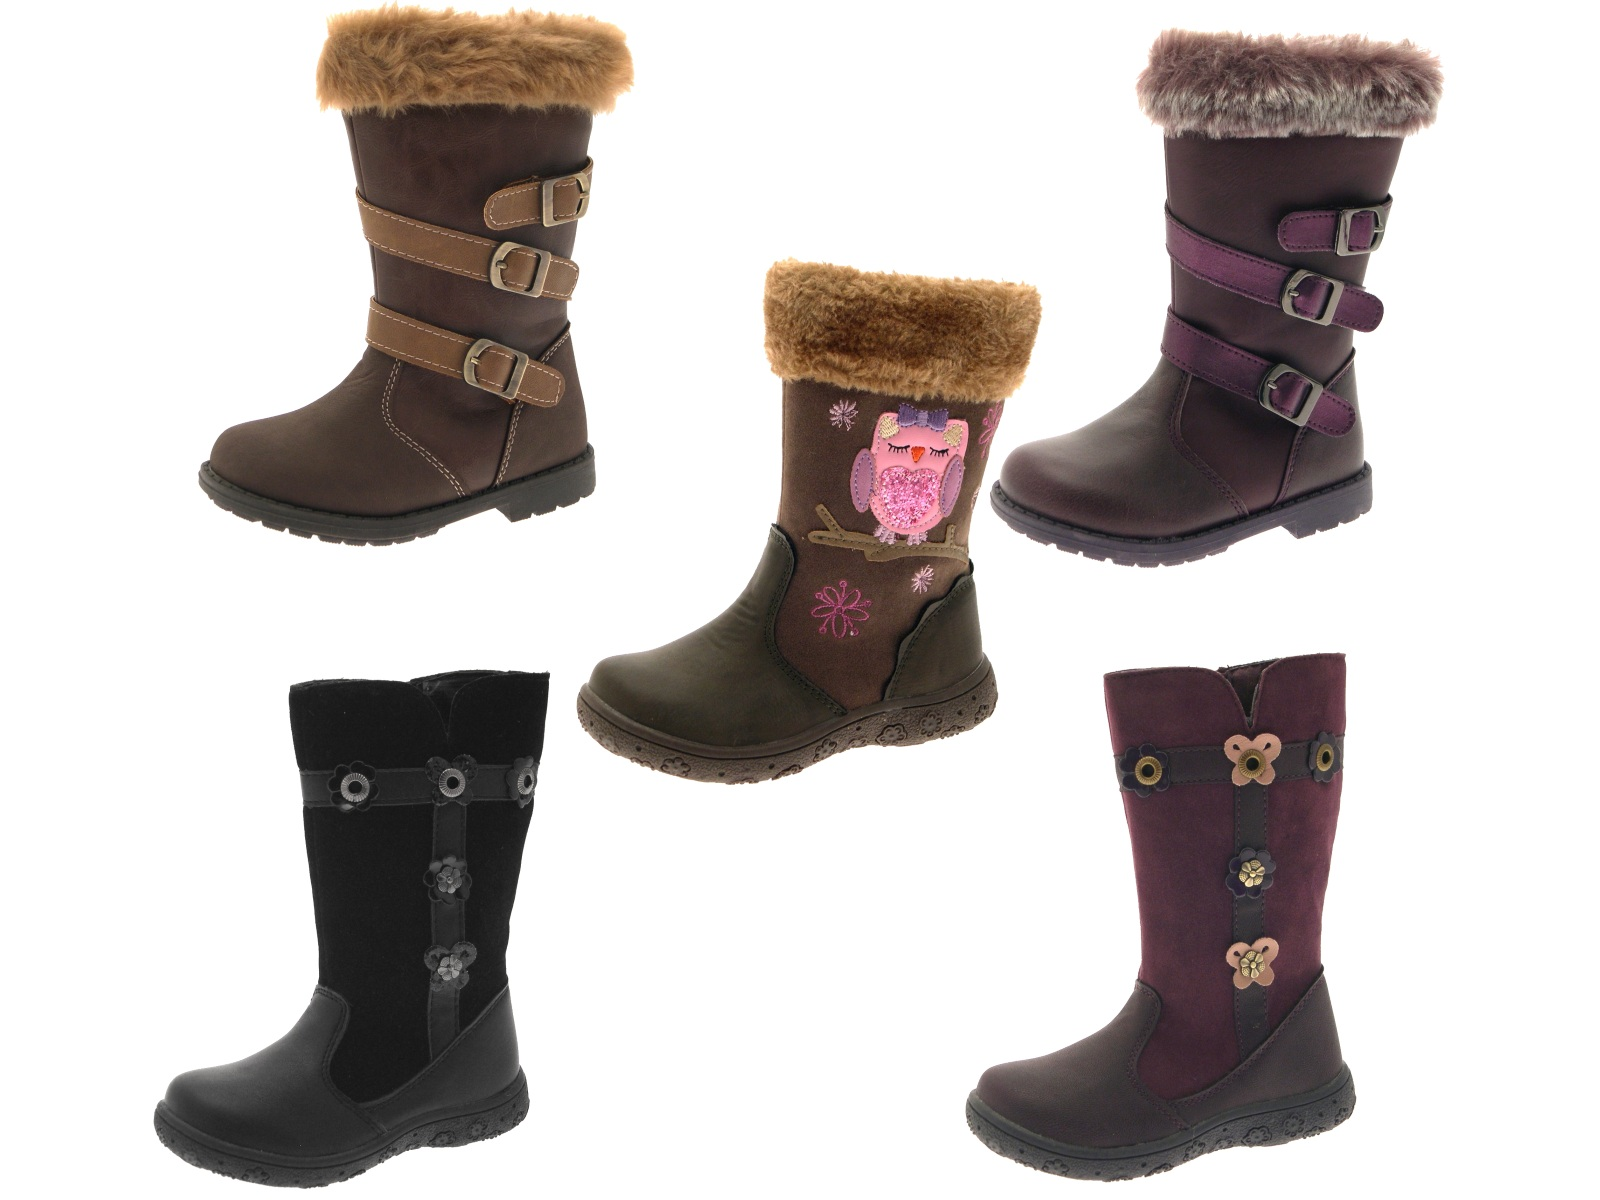 Kids Glitter or Snow texture Faux Fur Ankle Boots Shoes Flat Side Zipper shoes. Beautiful Comfort Sole with zipper on side for easy on or off, sure will warm you up all winter.